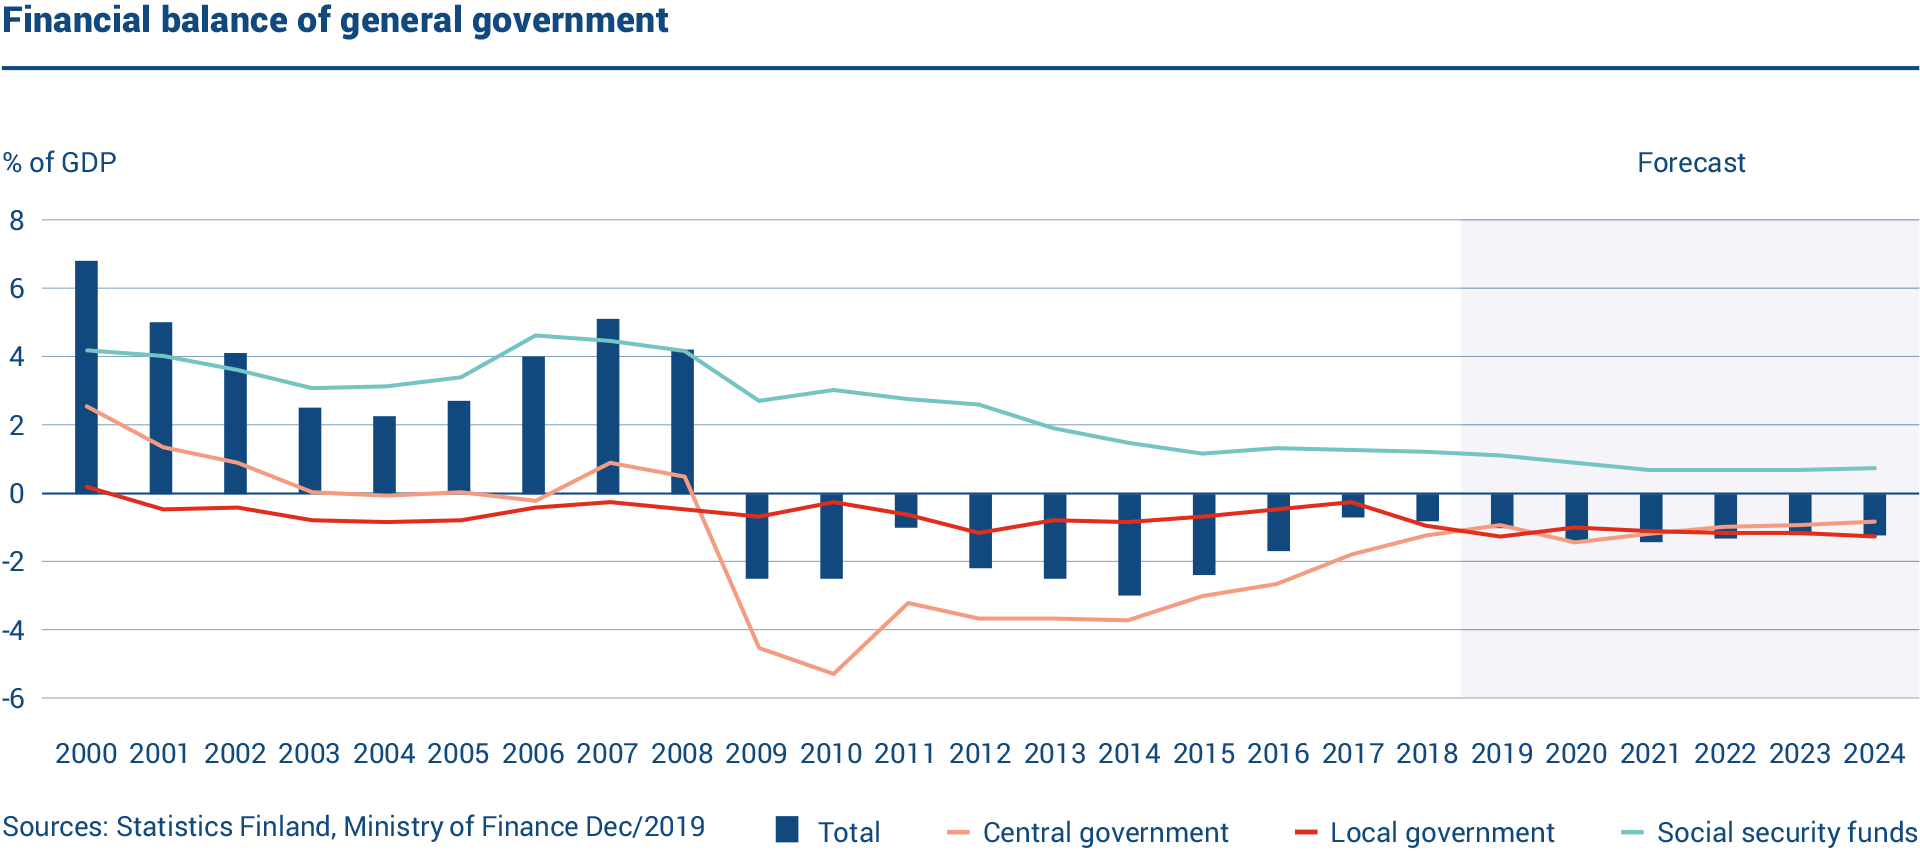 The graph shows the financial balance of the Finnish general government. Social security funds are running a surplus while central and local government show deficits.